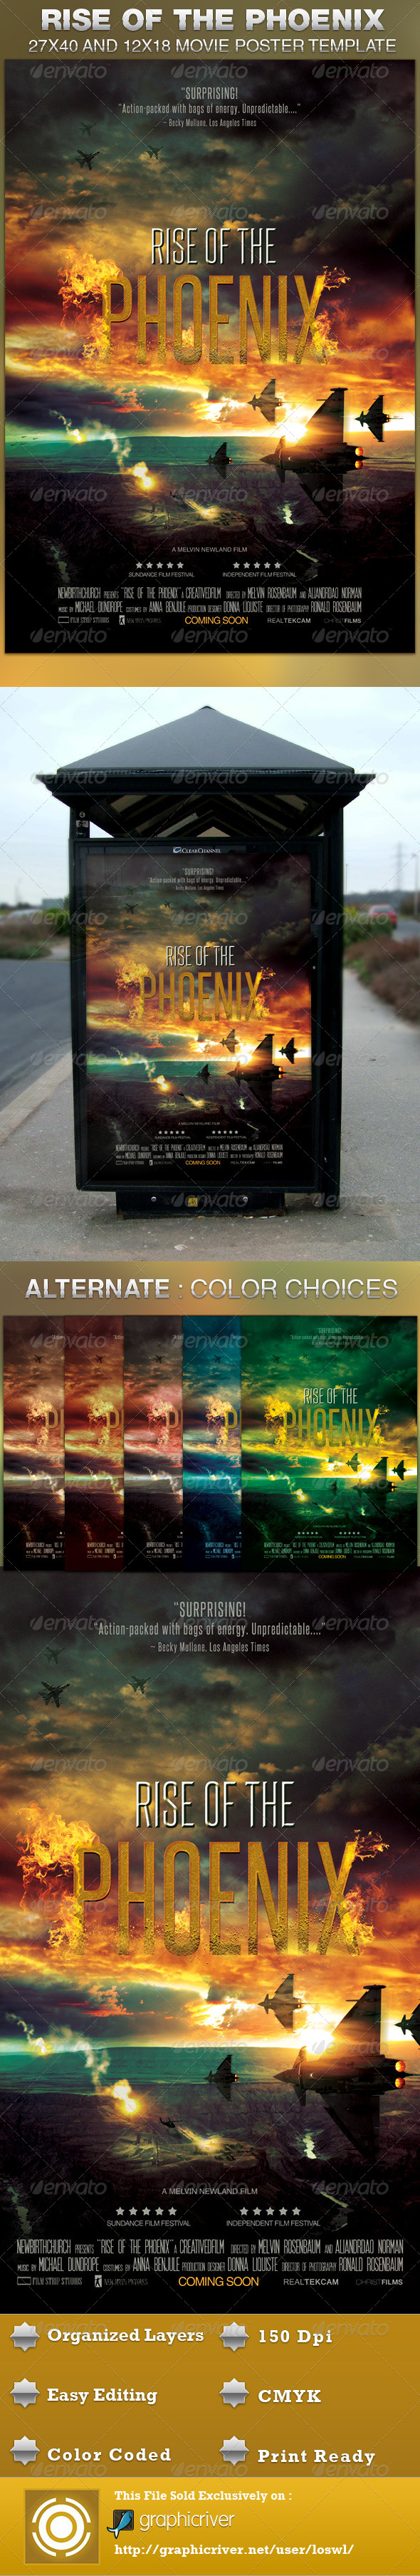 GraphicRiver Rise of the Phoenix Movie Poster Template 4557348